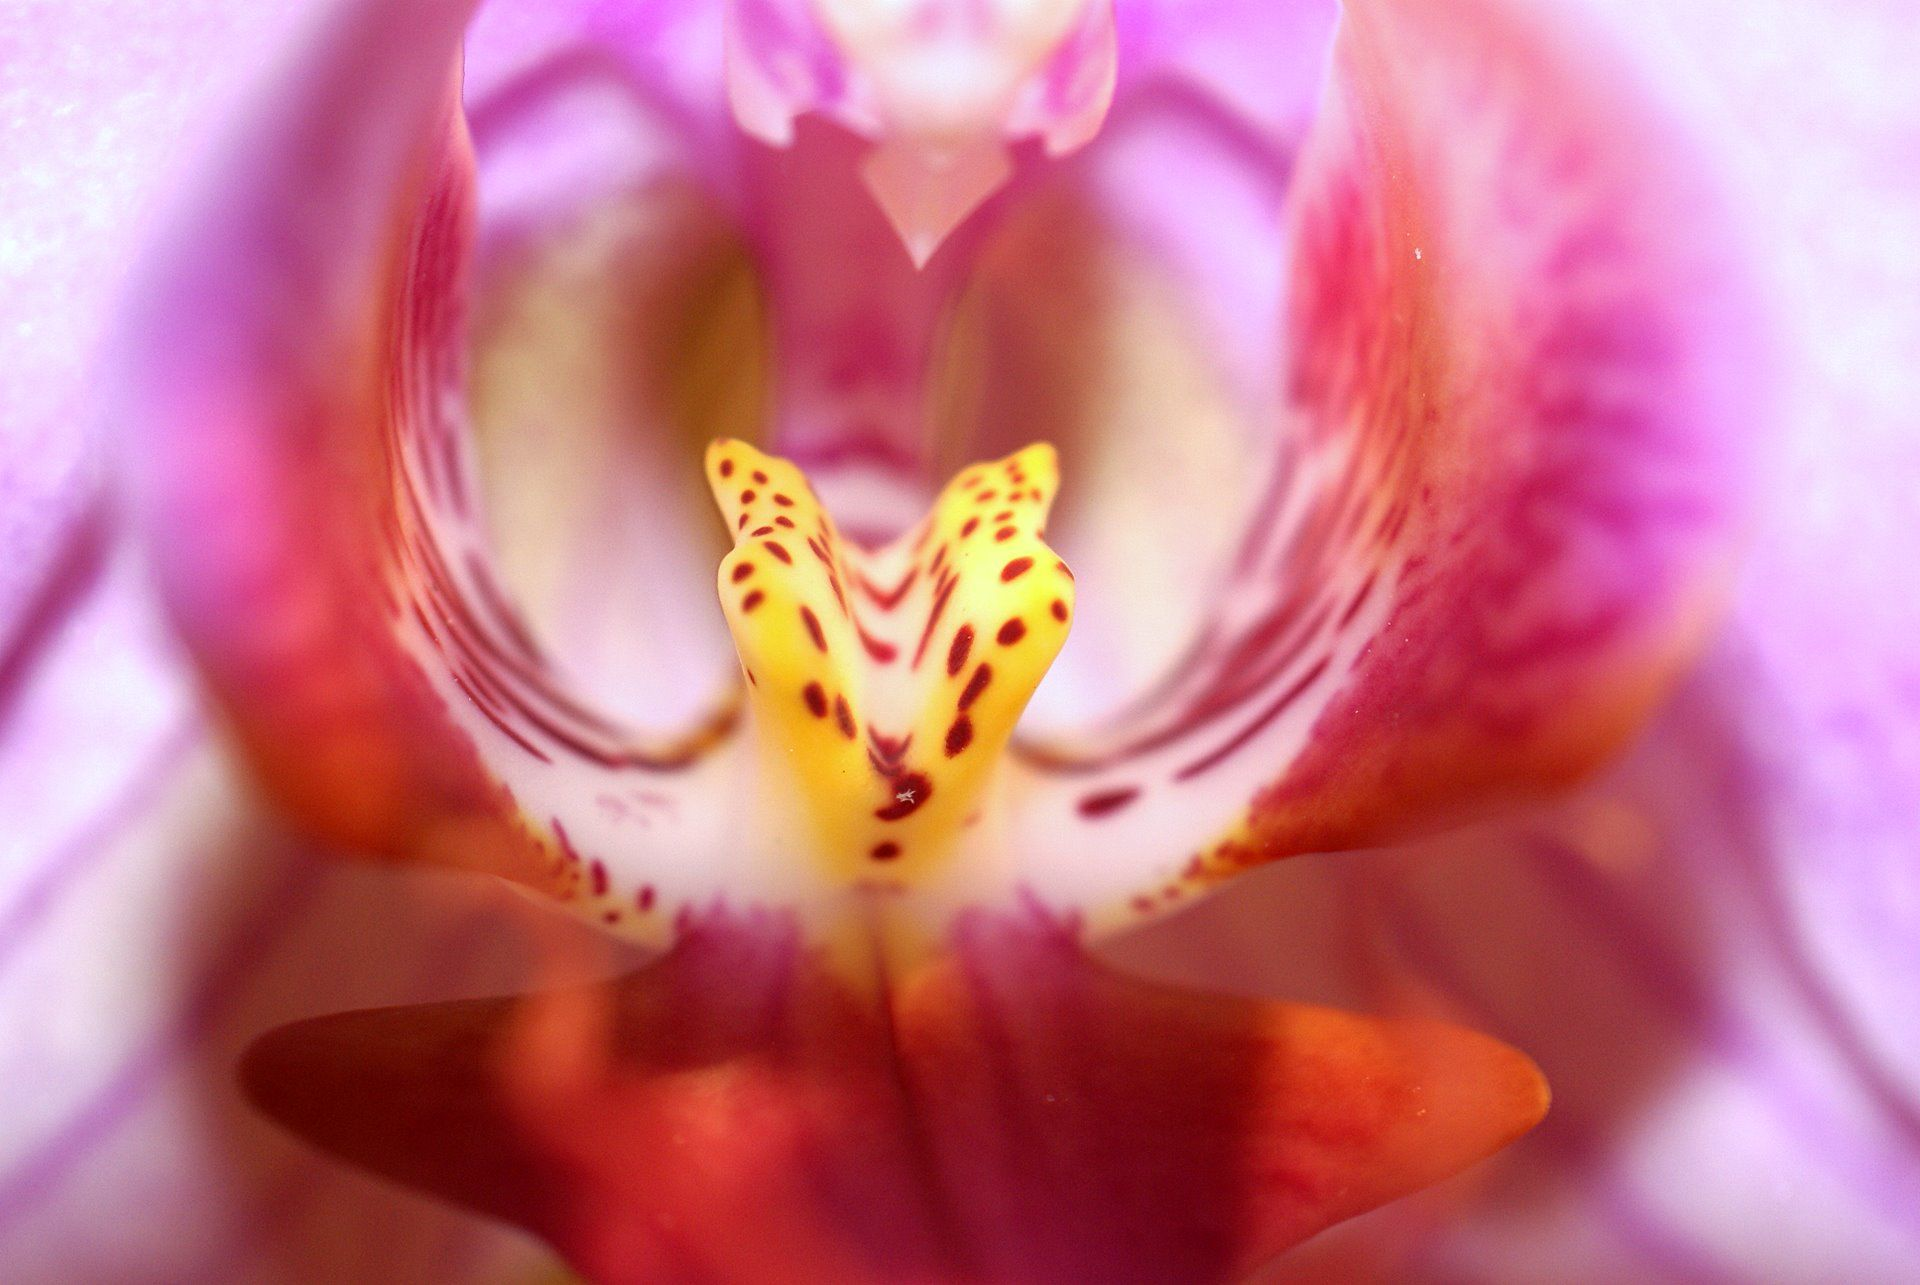 Orchid Flower Macro 1 1 Flowers Photography Wallpaper Orchid Flower Flowers Photography